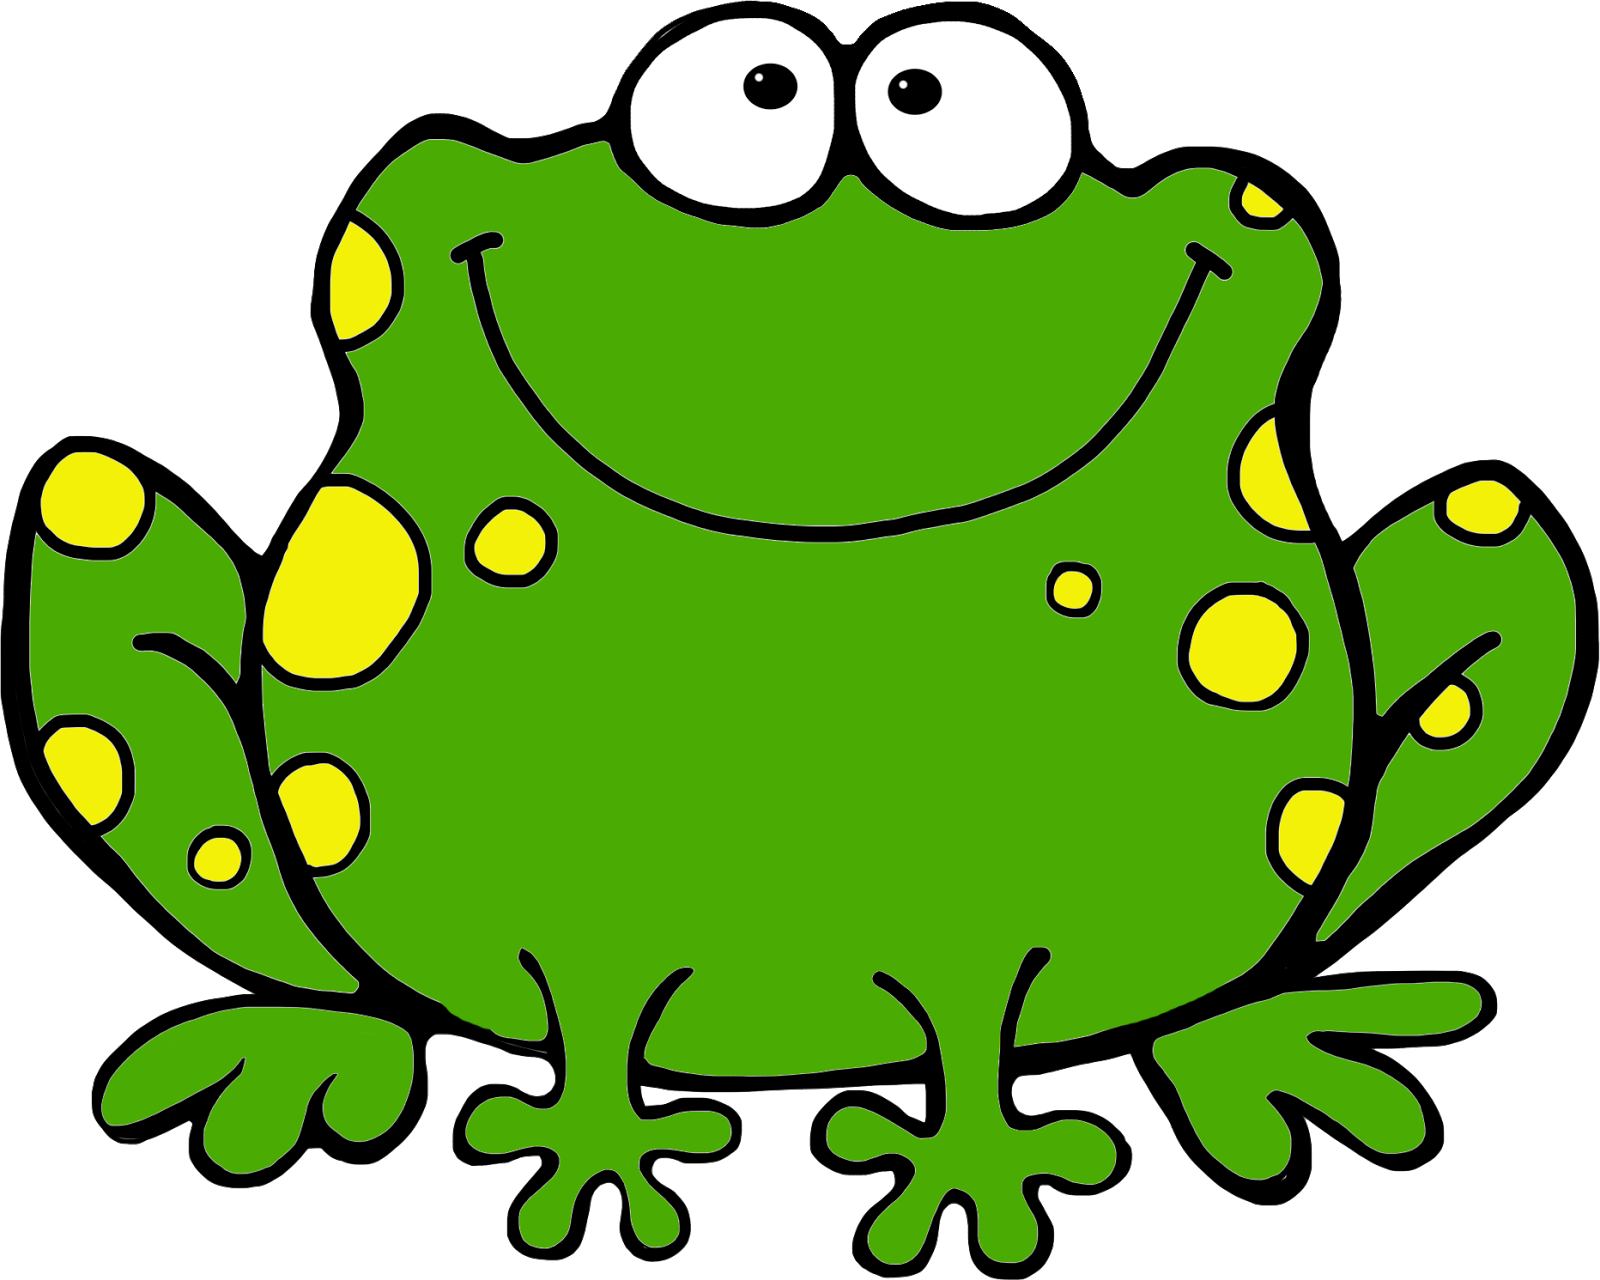 Frog Clipart - Clipart Kid